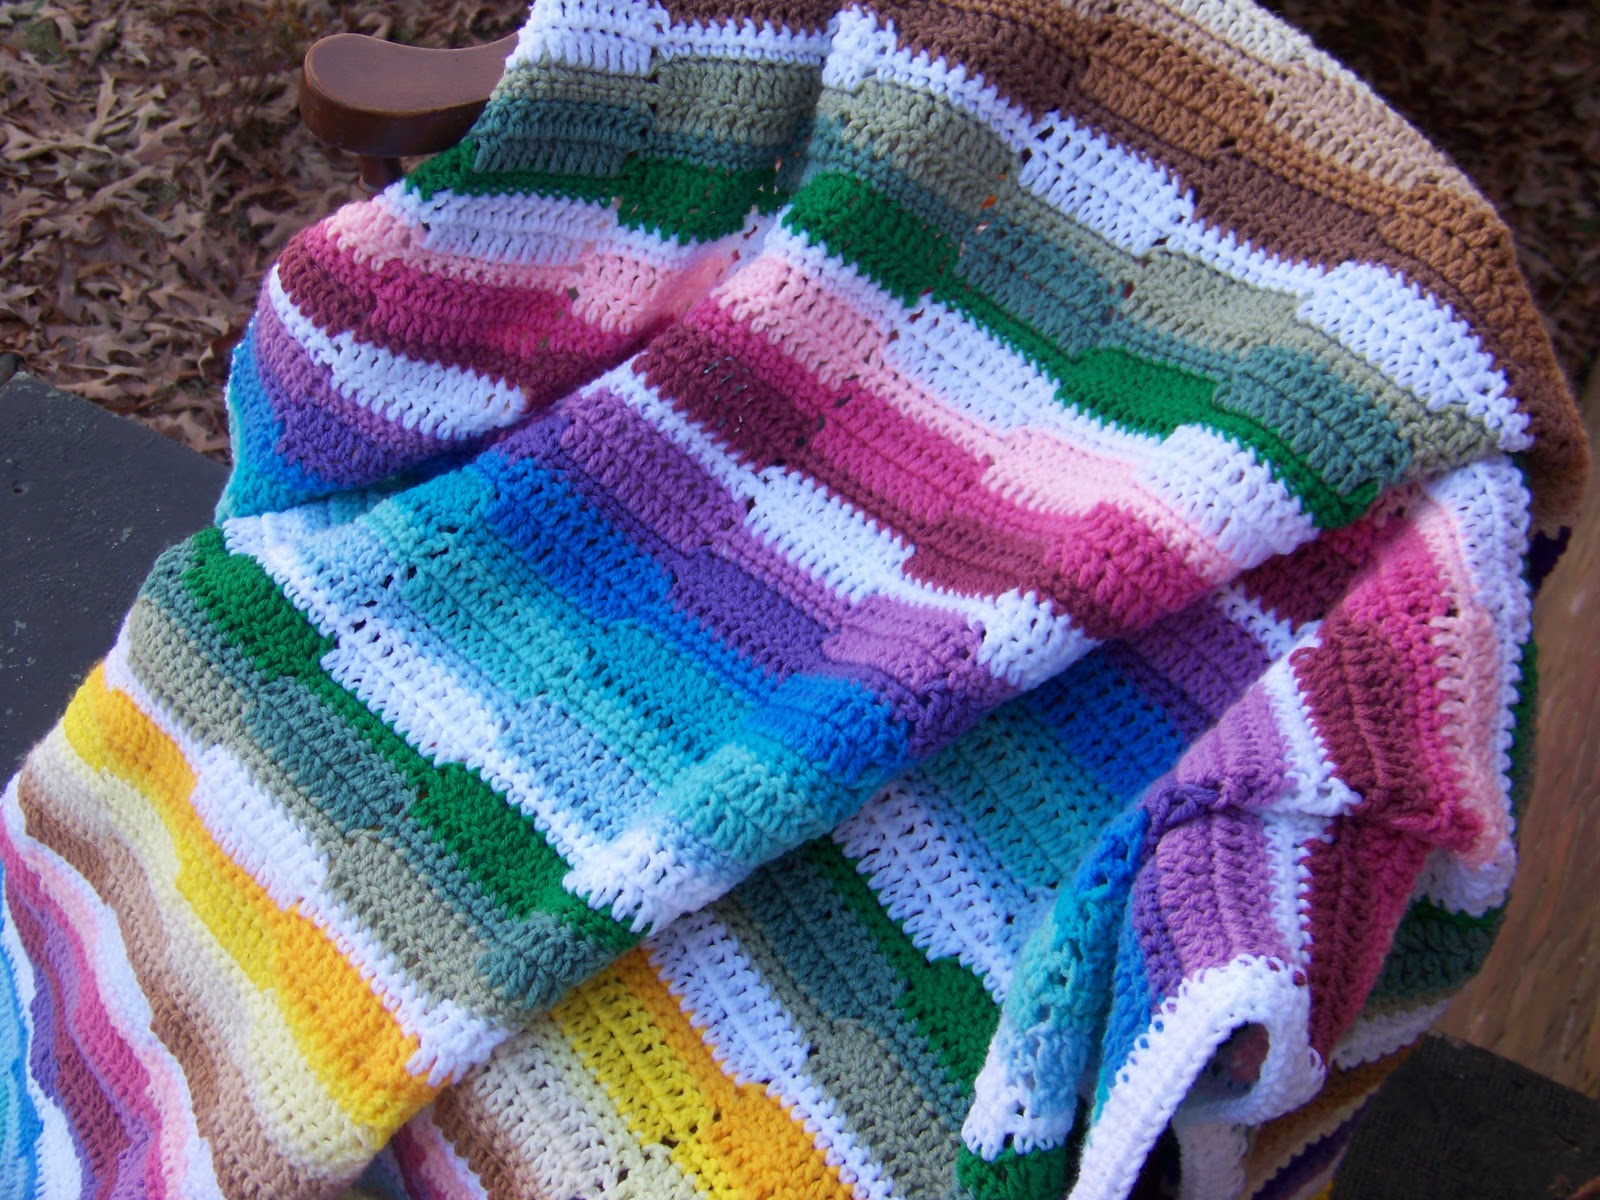 Free Crochet Patterns Using Ribbon Yarn : Stash Busting 2011: Ribbon Afghan Finished